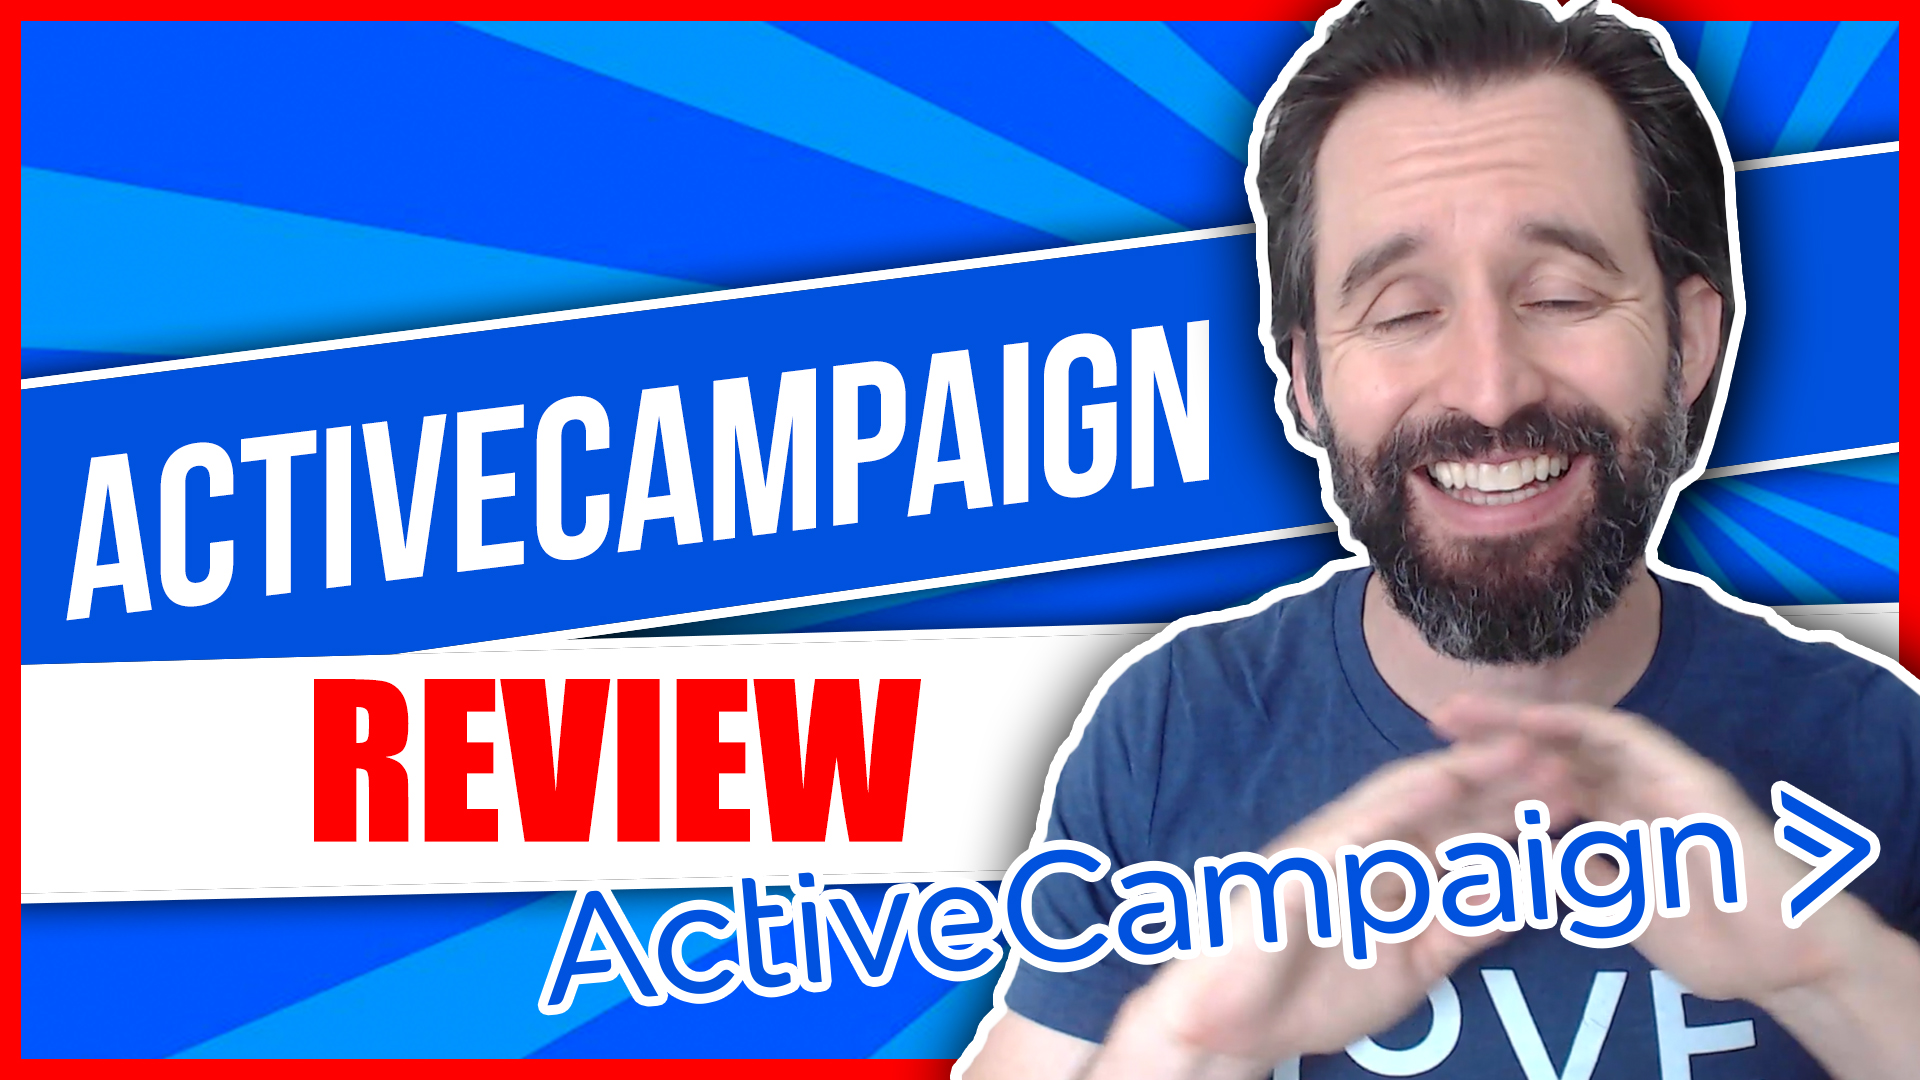 Should I Buy Email Marketing Active Campaign